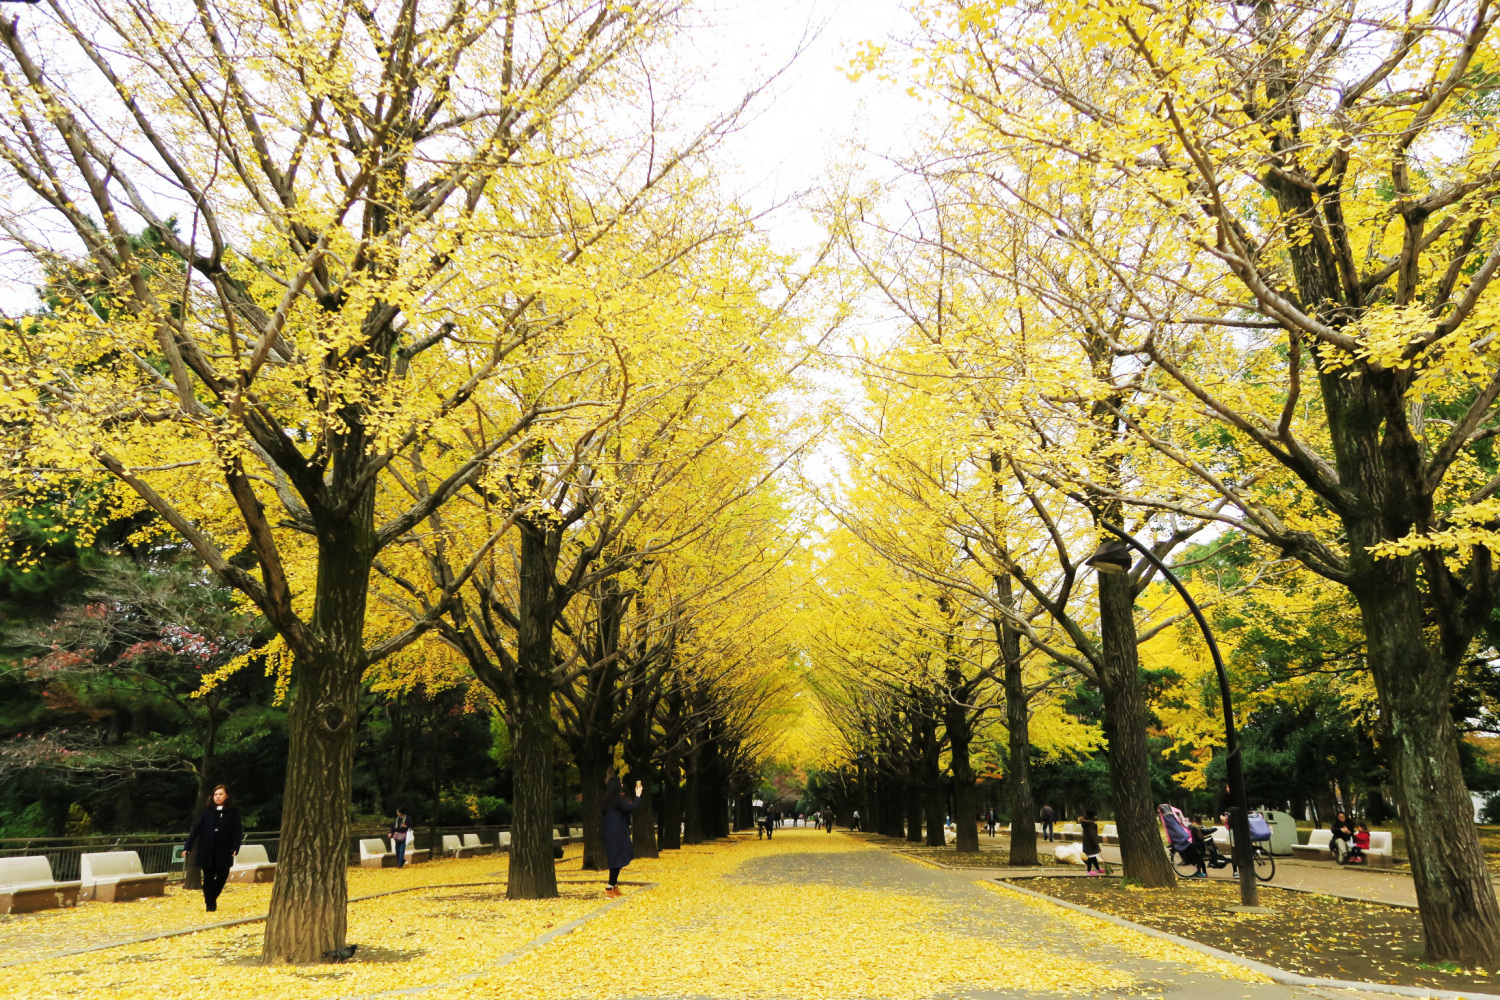 Ginkgo row of trees in front of pond of Hikarigaoka Park